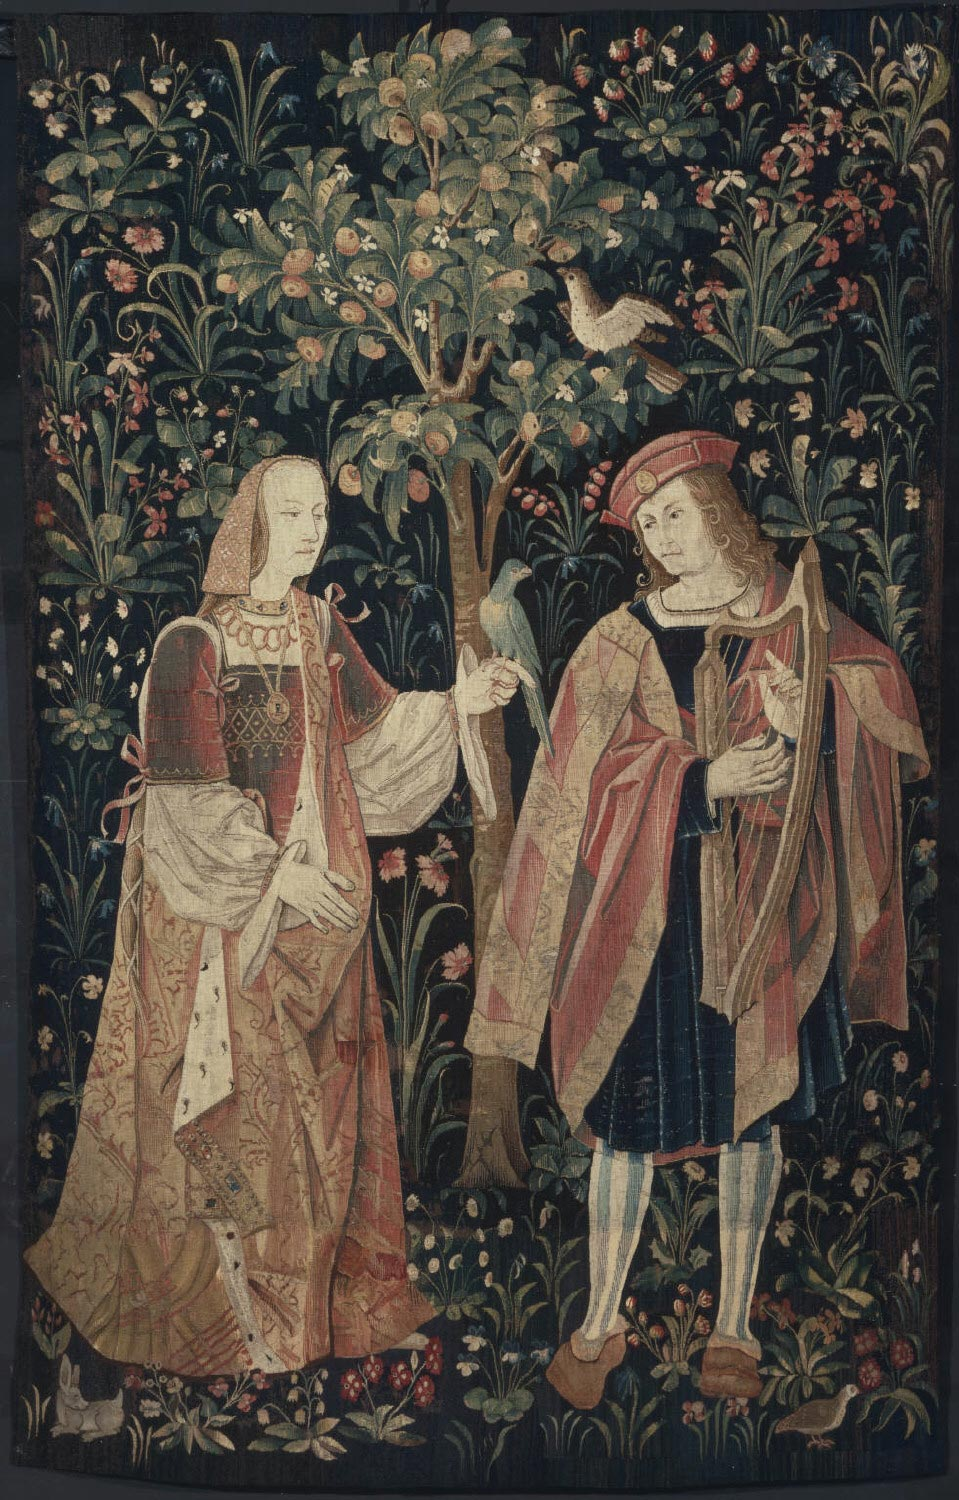 Fragment of a Tapestry showing a Courtly Couple